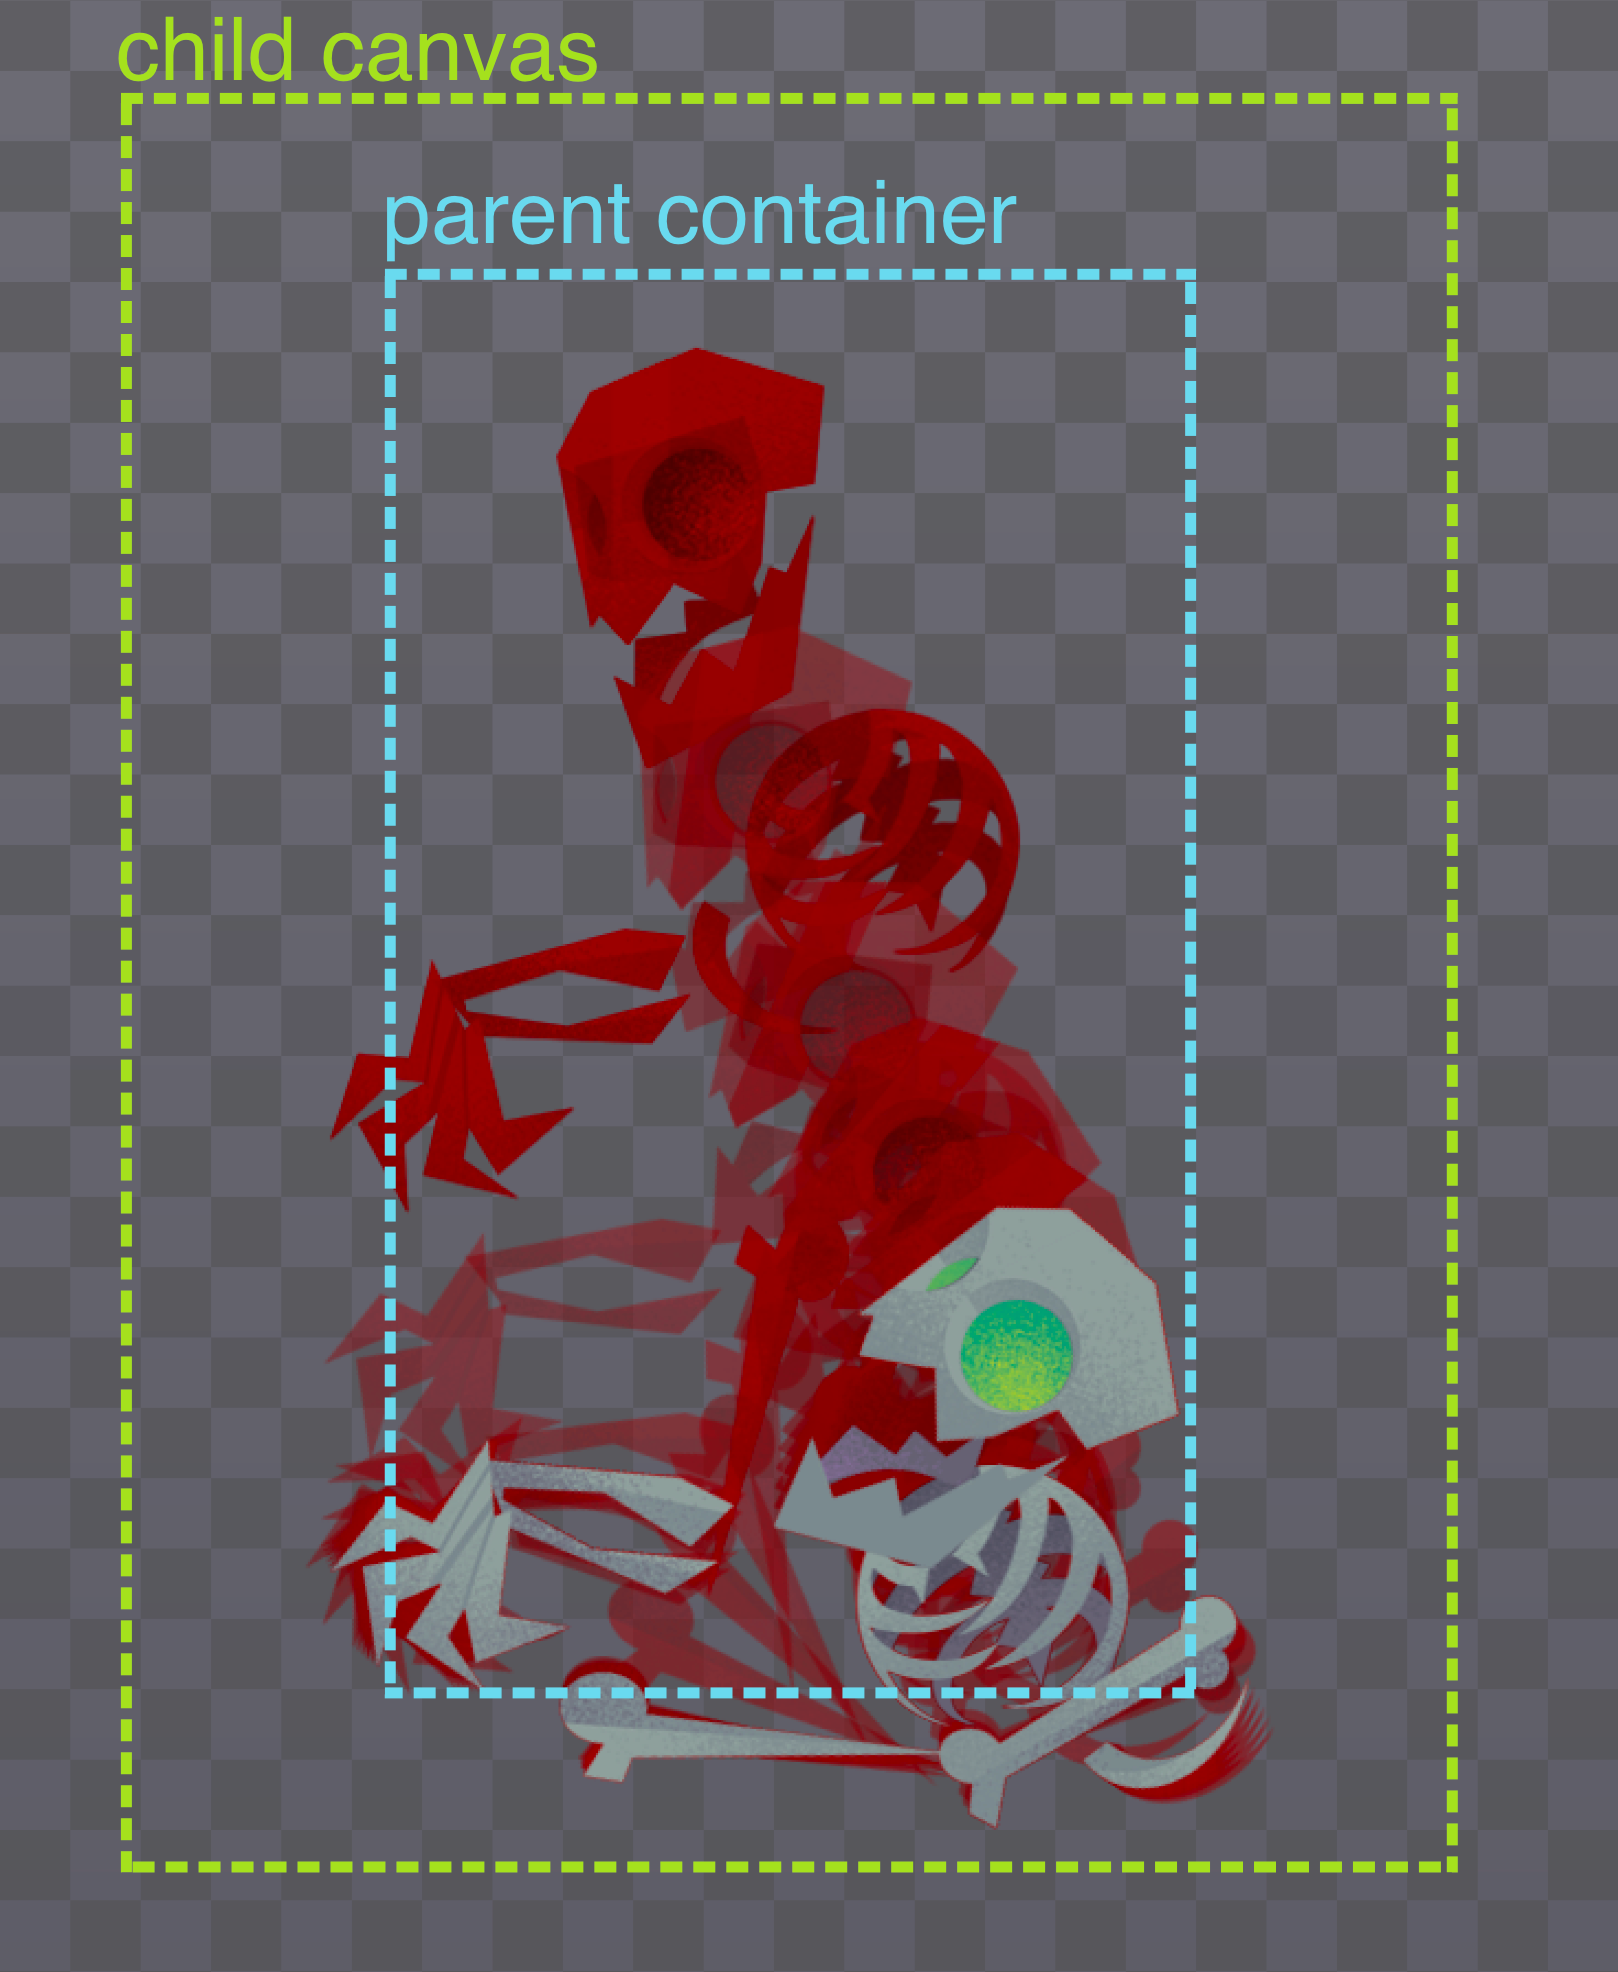 pinning element to parent's center